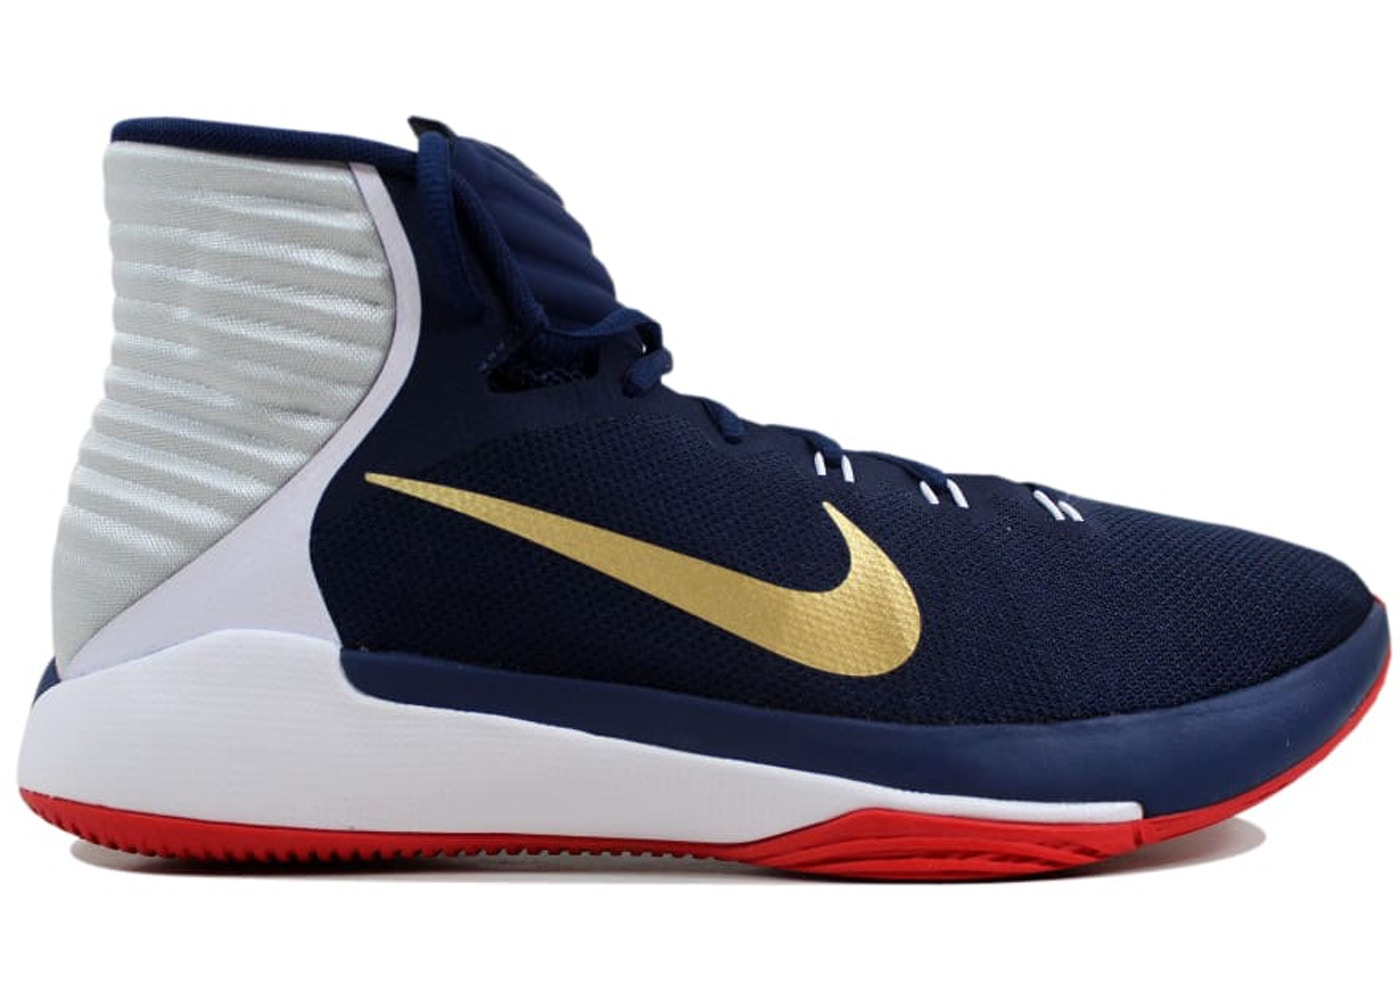 low priced 57a58 8fbf3 Nike Prime Hype DF 2016 Midnight Navy